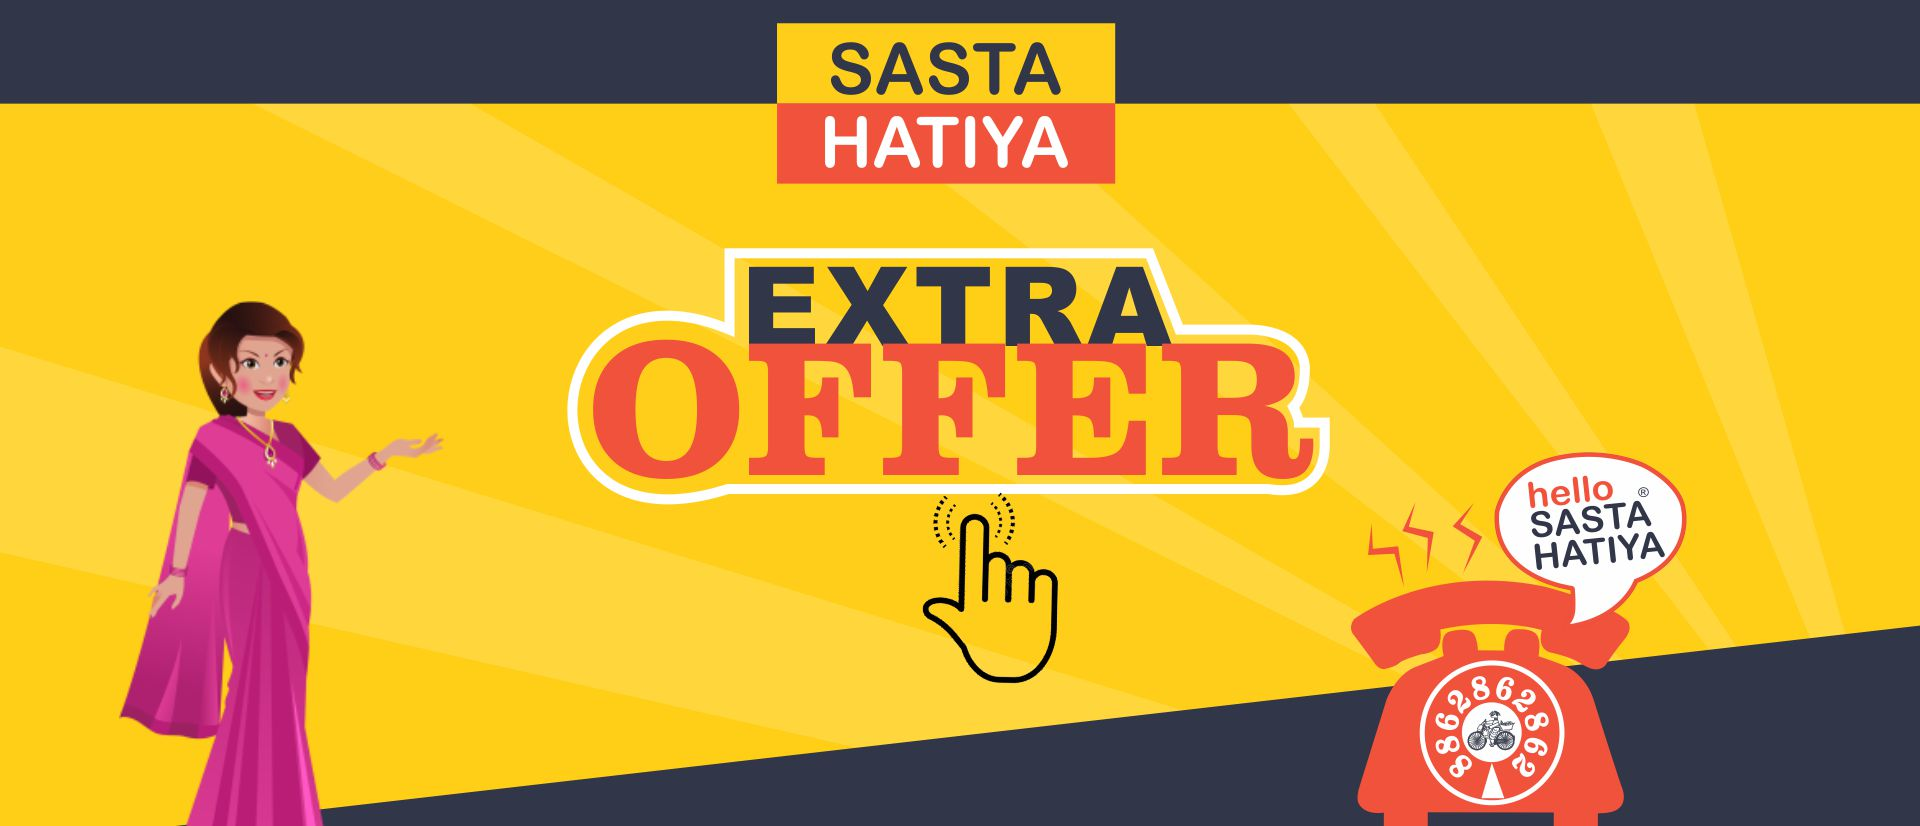 Extra Offer